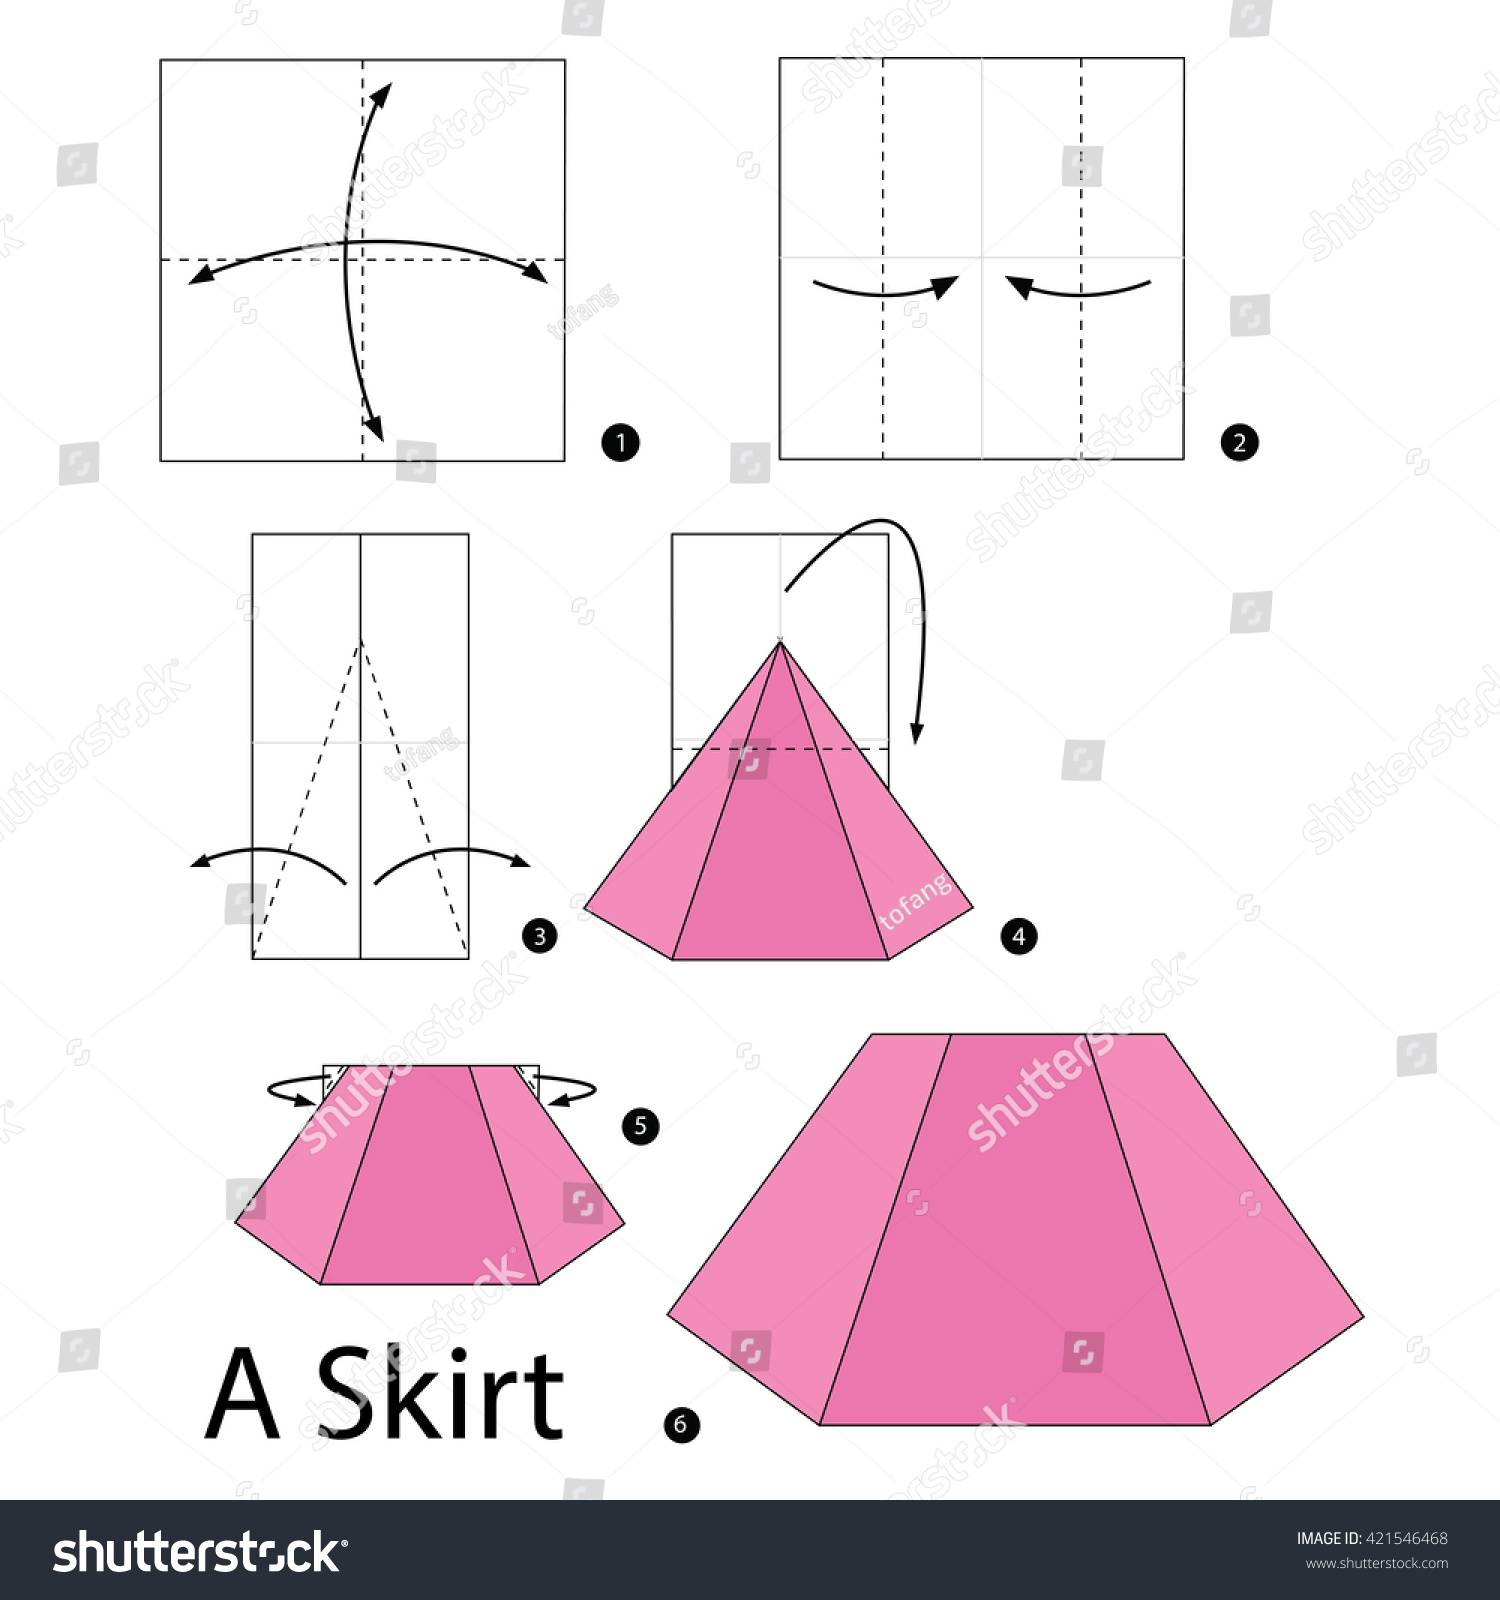 Step by step instructions how to make origami an one piece dress.